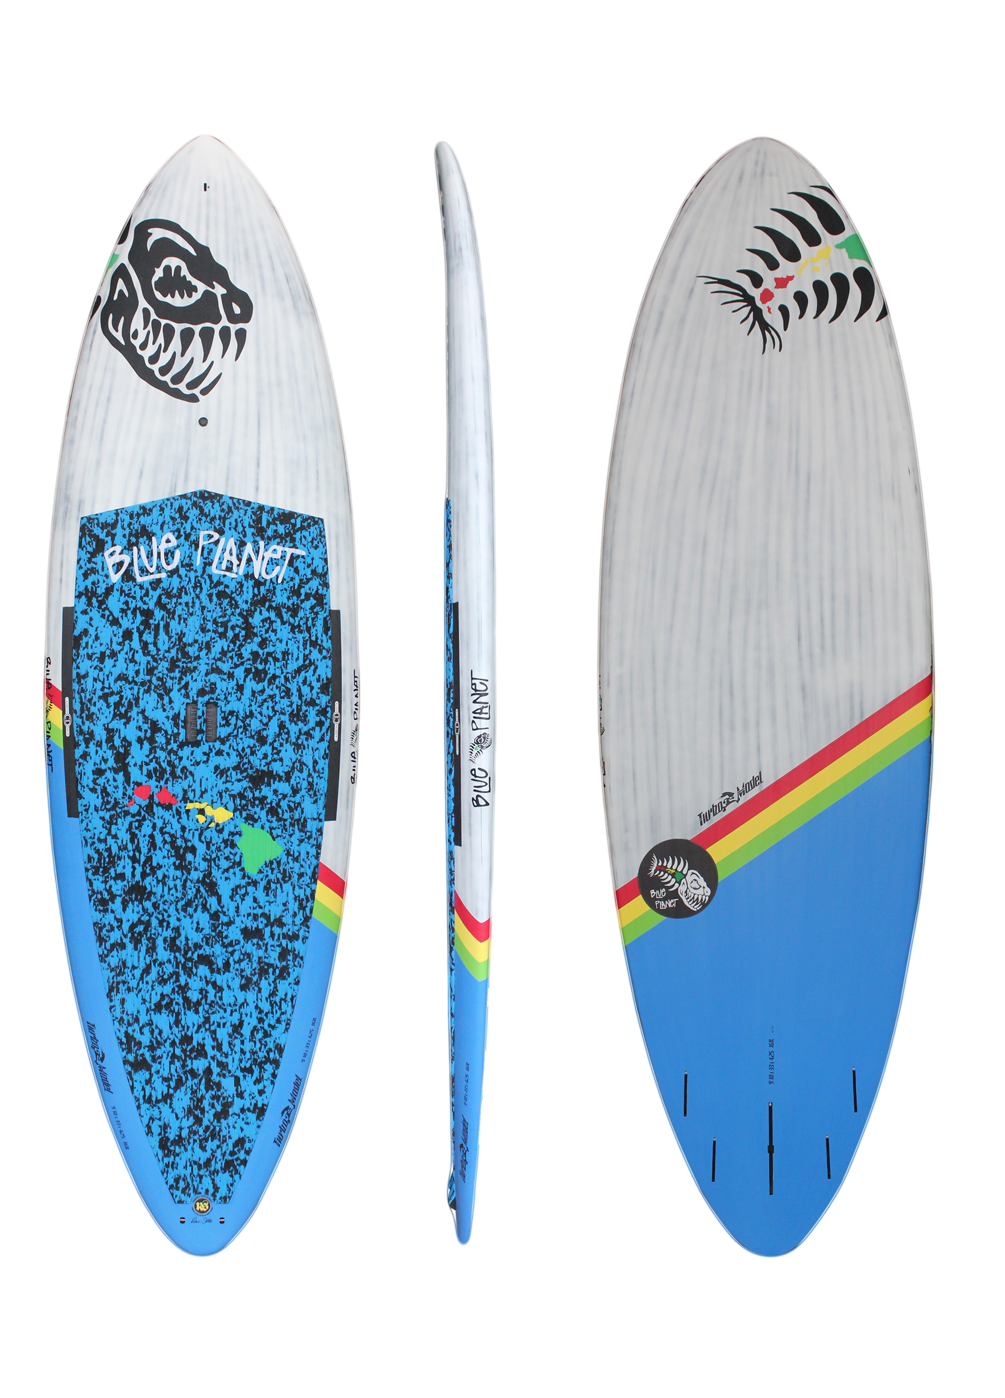 9'10x33 Turbo wht-blue carbon HW